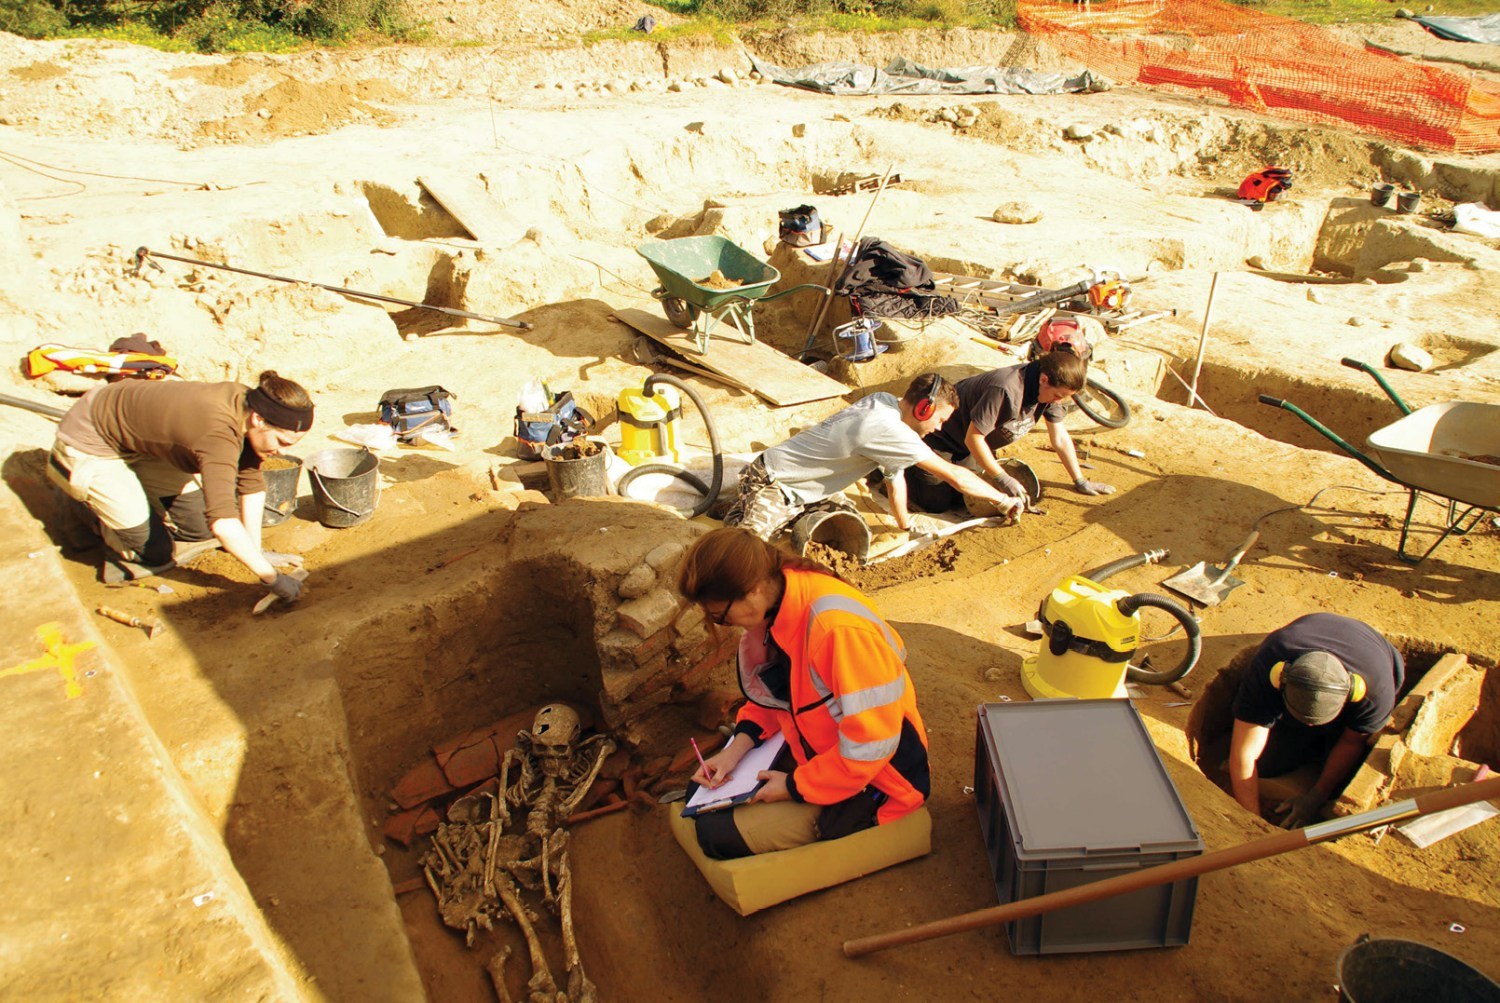 below right Excavations in the necropolis: in the foreground, Catherine Rigeade, an anthropology and funerary archaeology specialist, is recording an individual buried over a tile tomb; on the right, Pierre-Hubert Pernici excavates the burial of an immature male dating to the 3rd century BC; in the background, Aléxia Lattard is investigating the top of a pyre; behind, Marina-Lou Mizael and Thomas Terracol excavate a burial in a coffin.